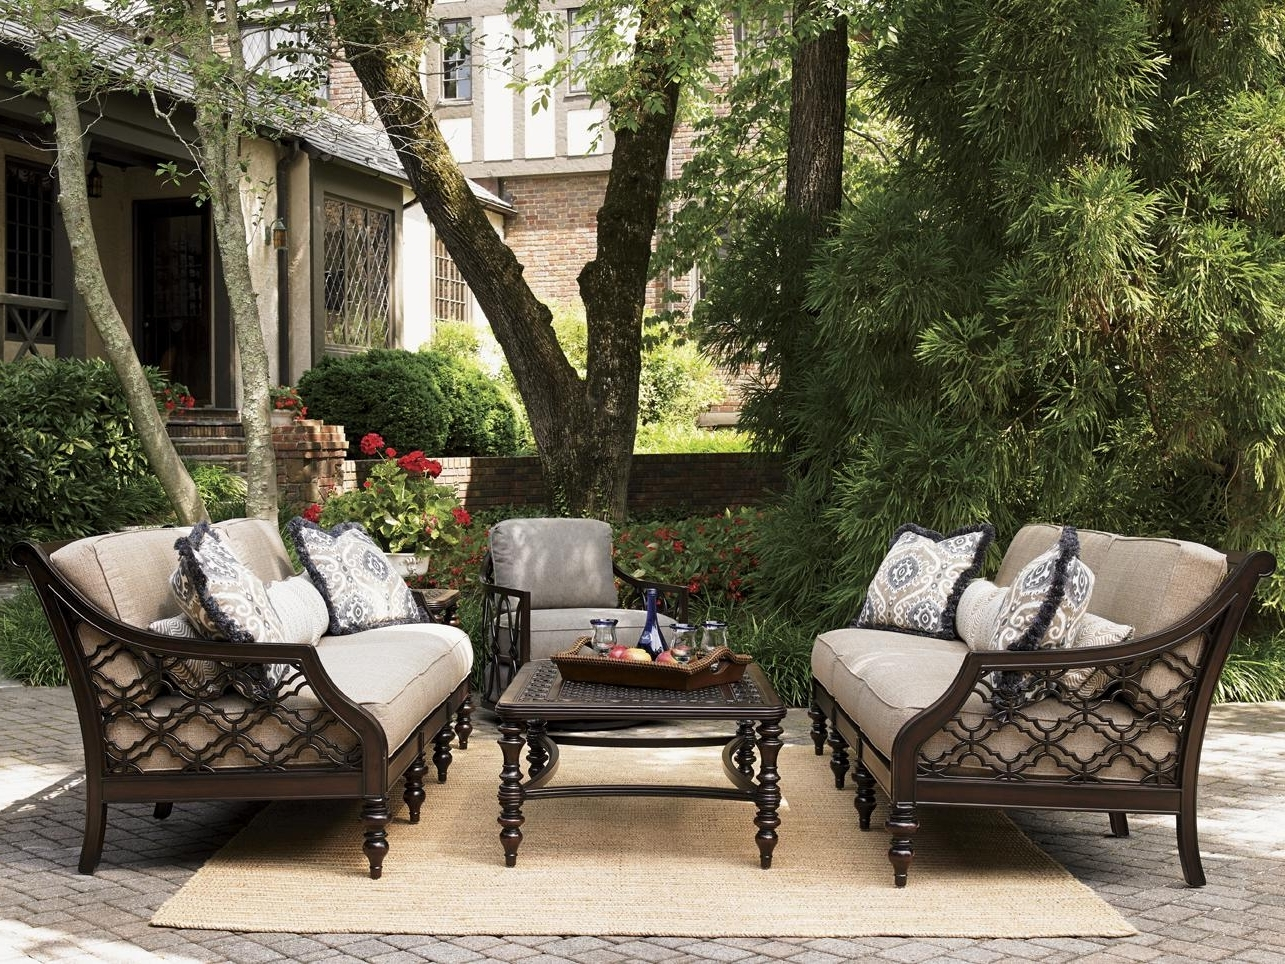 Decoration Patio Bench Outdoor Table And Chairs Outdoor Patio In Most Current Patio Furniture Sets With Umbrellas (View 13 of 20)